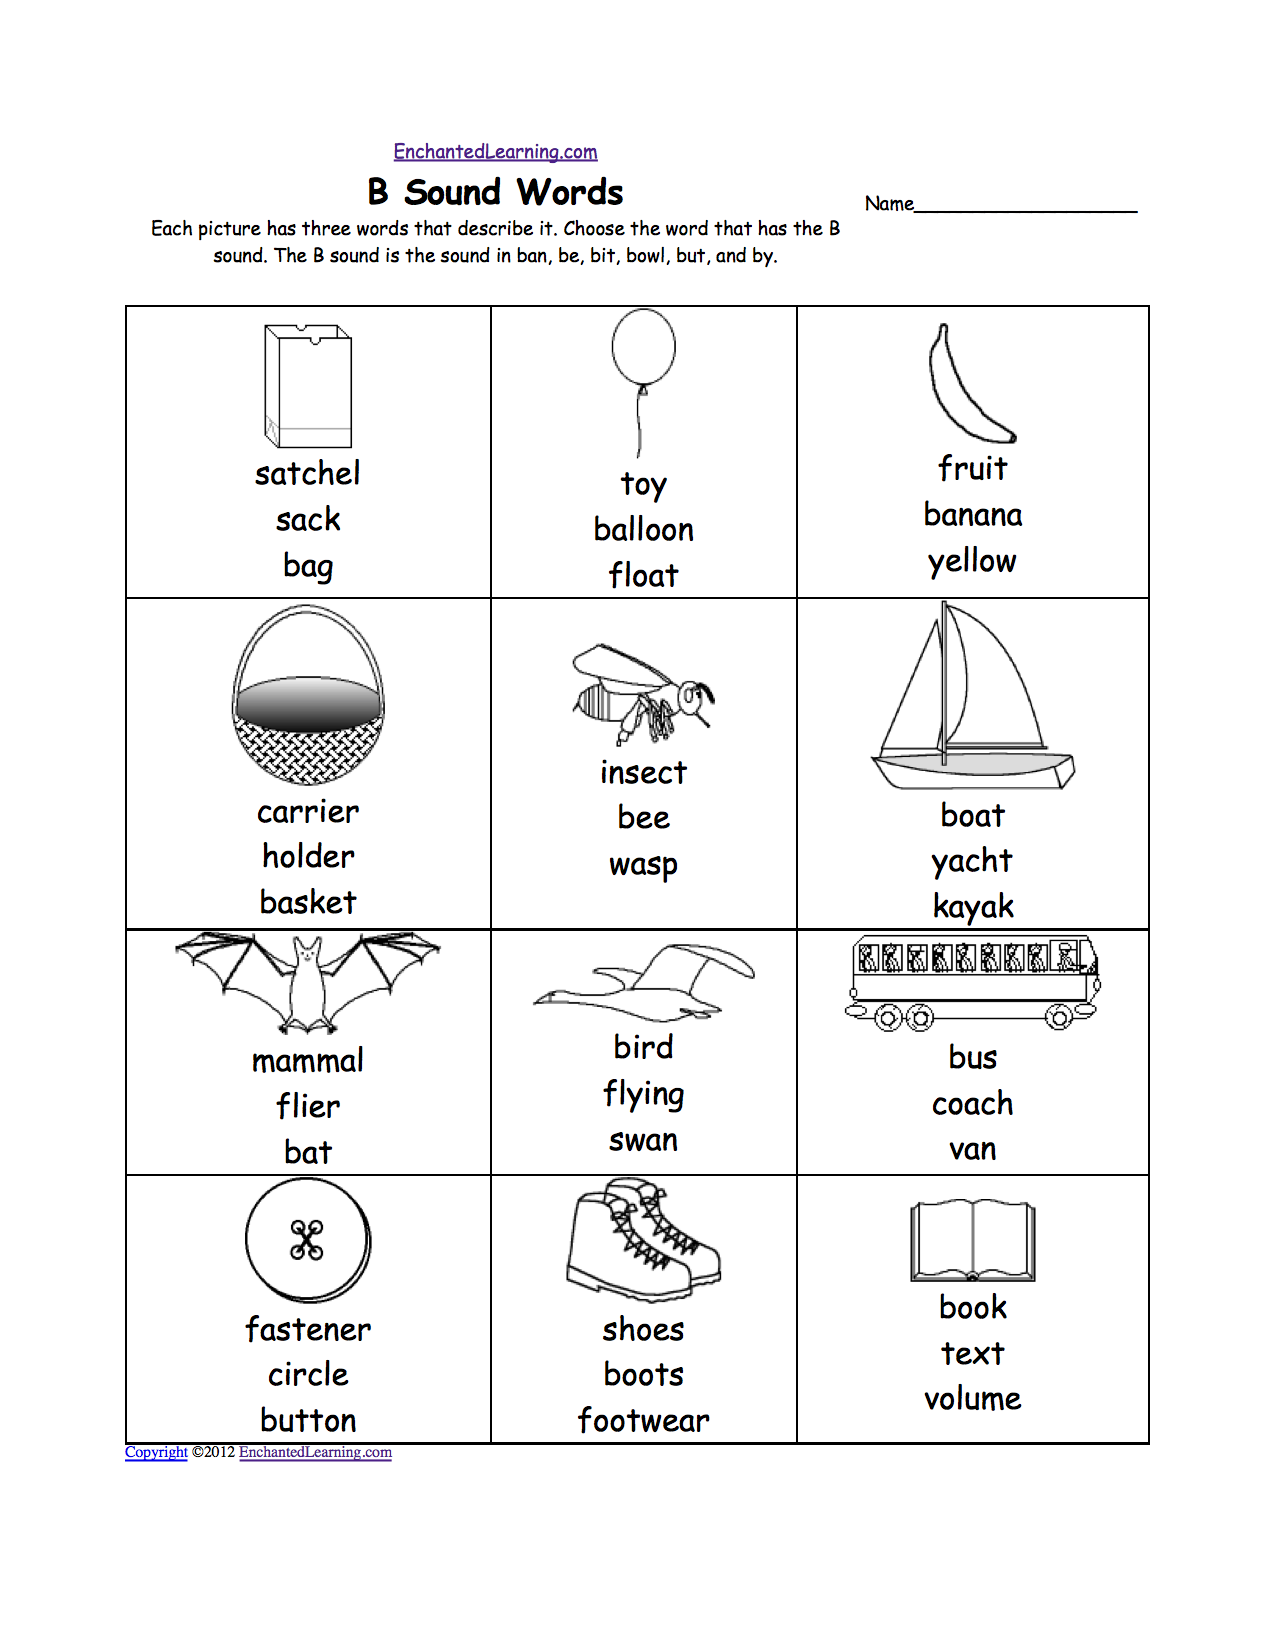 Weirdmailus  Inspiring Phonics Worksheets Multiple Choice Worksheets To Print  With Outstanding Quotbquot Sound Phonics Worksheet Multiple Choice Each Picture Has Three Words That Describe It Choose The Word That Has A Quotbquot Sound The Quotbquot Sound Is The Sound  With Amusing Goal Setting Worksheet For Adults Also Left And Right Worksheets In Addition Tally Marks Worksheet And Free Holiday Worksheets As Well As Reading Comprehension Kindergarten Worksheets Additionally Abc Trace Worksheet From Enchantedlearningcom With Weirdmailus  Outstanding Phonics Worksheets Multiple Choice Worksheets To Print  With Amusing Quotbquot Sound Phonics Worksheet Multiple Choice Each Picture Has Three Words That Describe It Choose The Word That Has A Quotbquot Sound The Quotbquot Sound Is The Sound  And Inspiring Goal Setting Worksheet For Adults Also Left And Right Worksheets In Addition Tally Marks Worksheet From Enchantedlearningcom